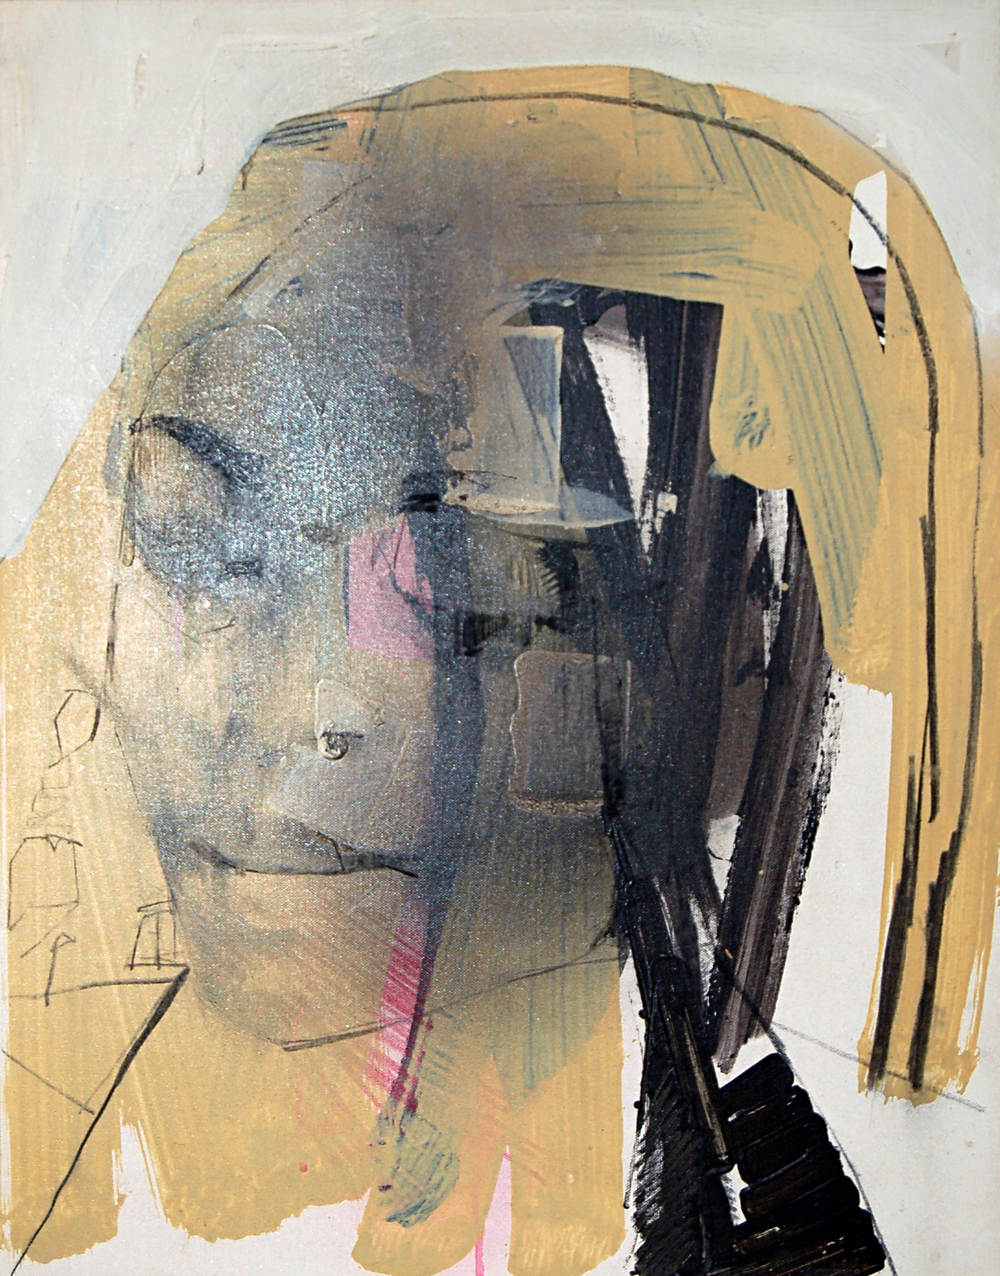 Francisco Nunez, Modelo de Spencer Tone, Mixed Media on Canvas, 2008, 48 x 62cm